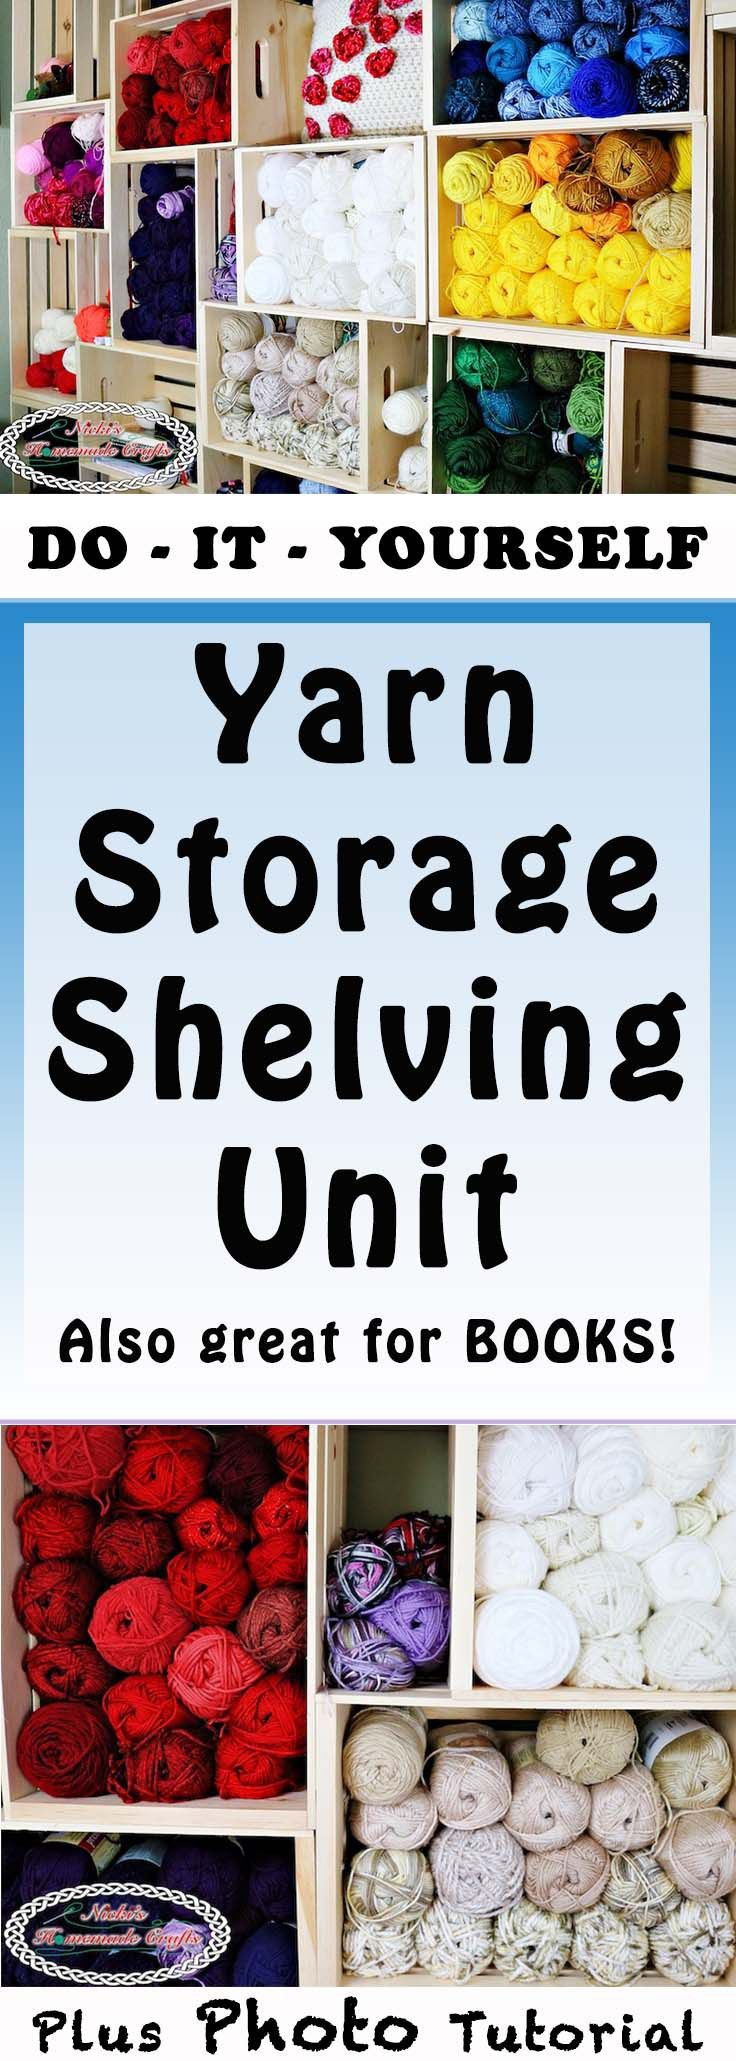 How to create your own DIY Yarn Storage Shelving